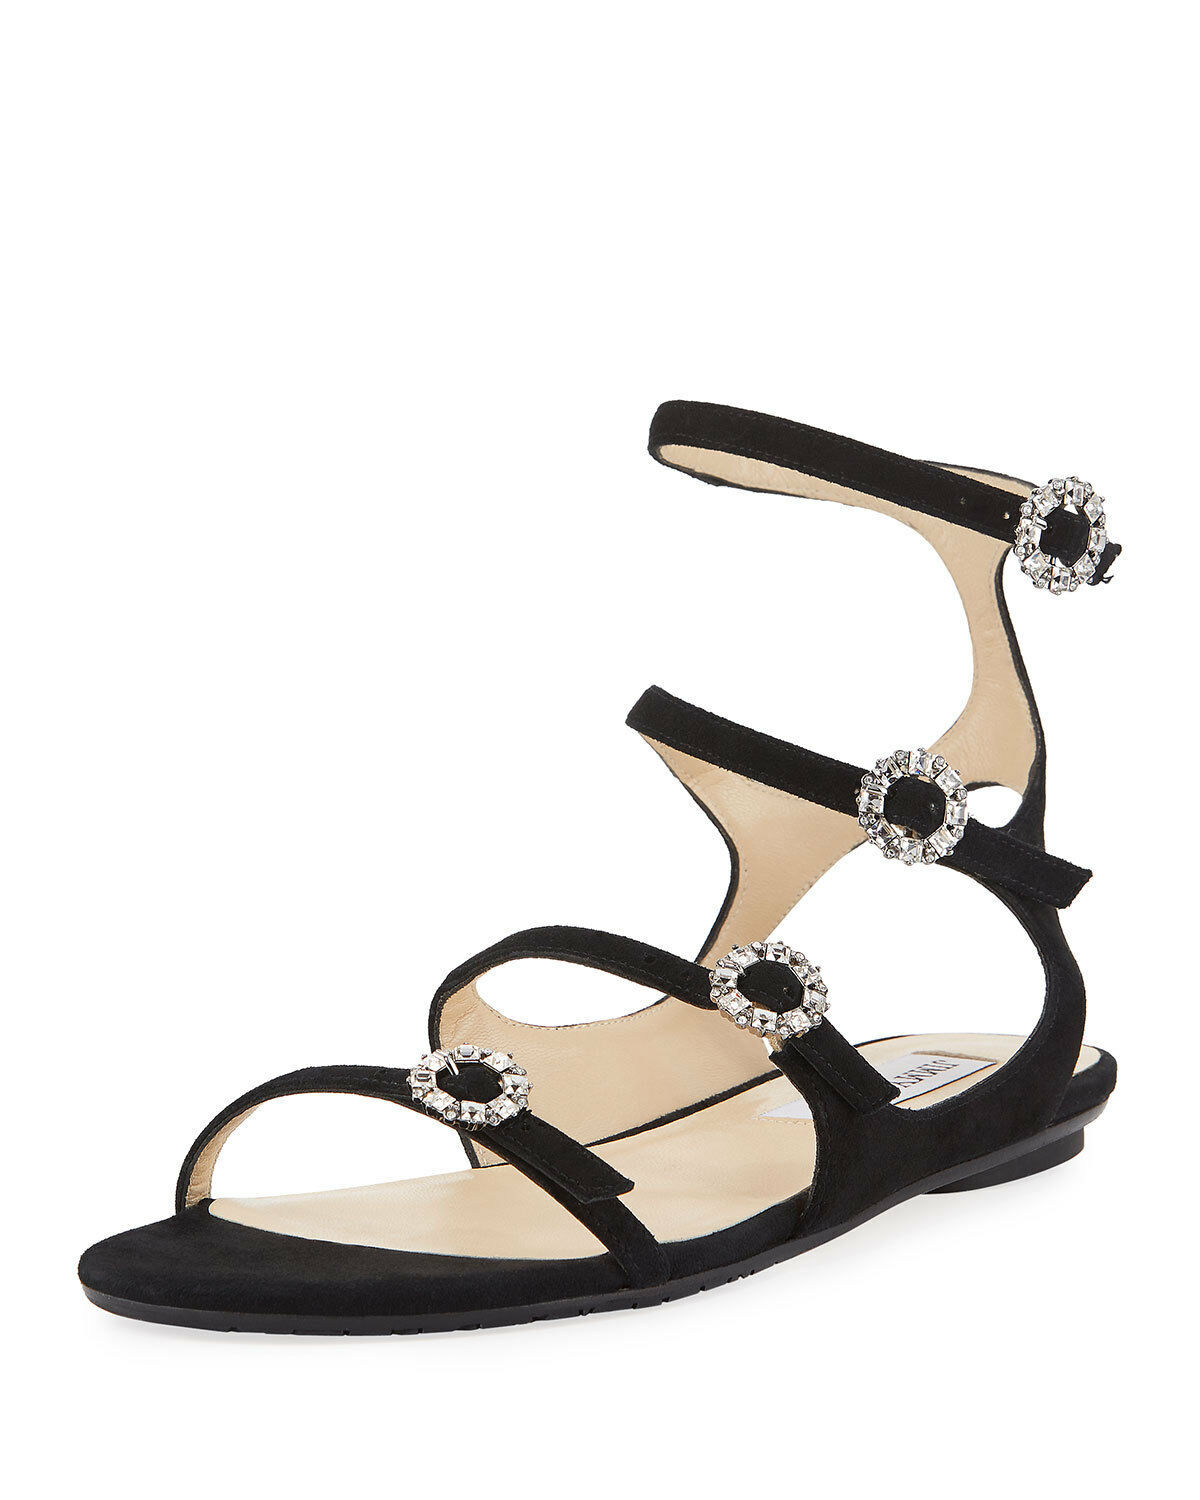 Primary image for Jimmy Choo Naia Suede Flat Sandal with Crystal Buckles, Black 39.5 MSRP: $695